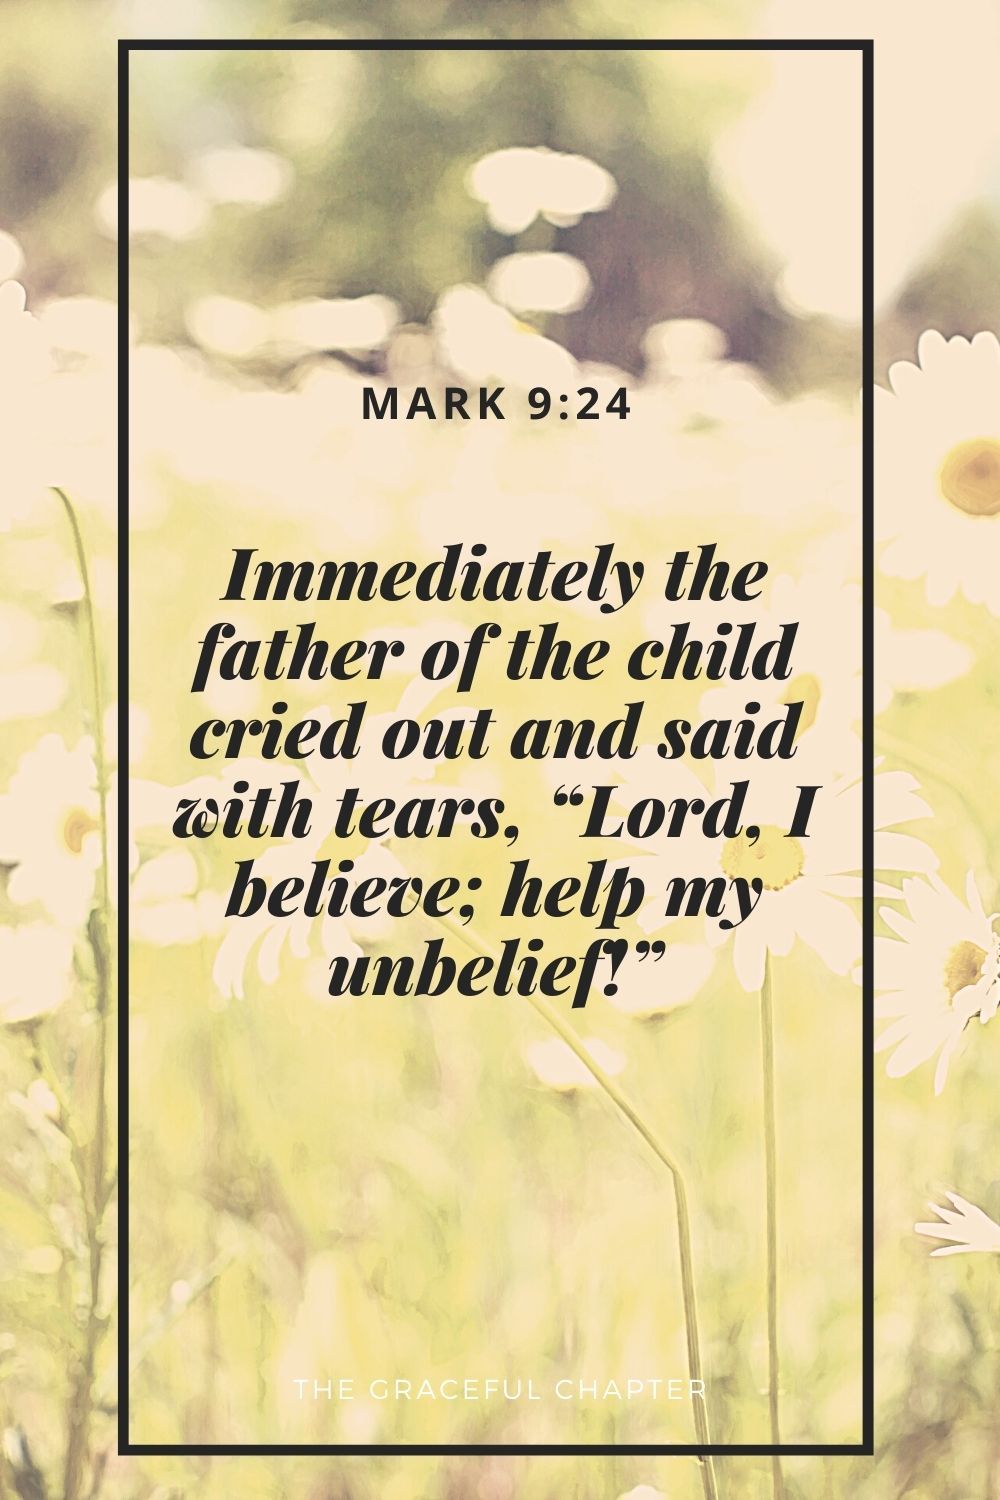 """Immediately the father of the child cried out and said with tears, """"Lord, I believe; help my unbelief!"""" Mark 9:24"""